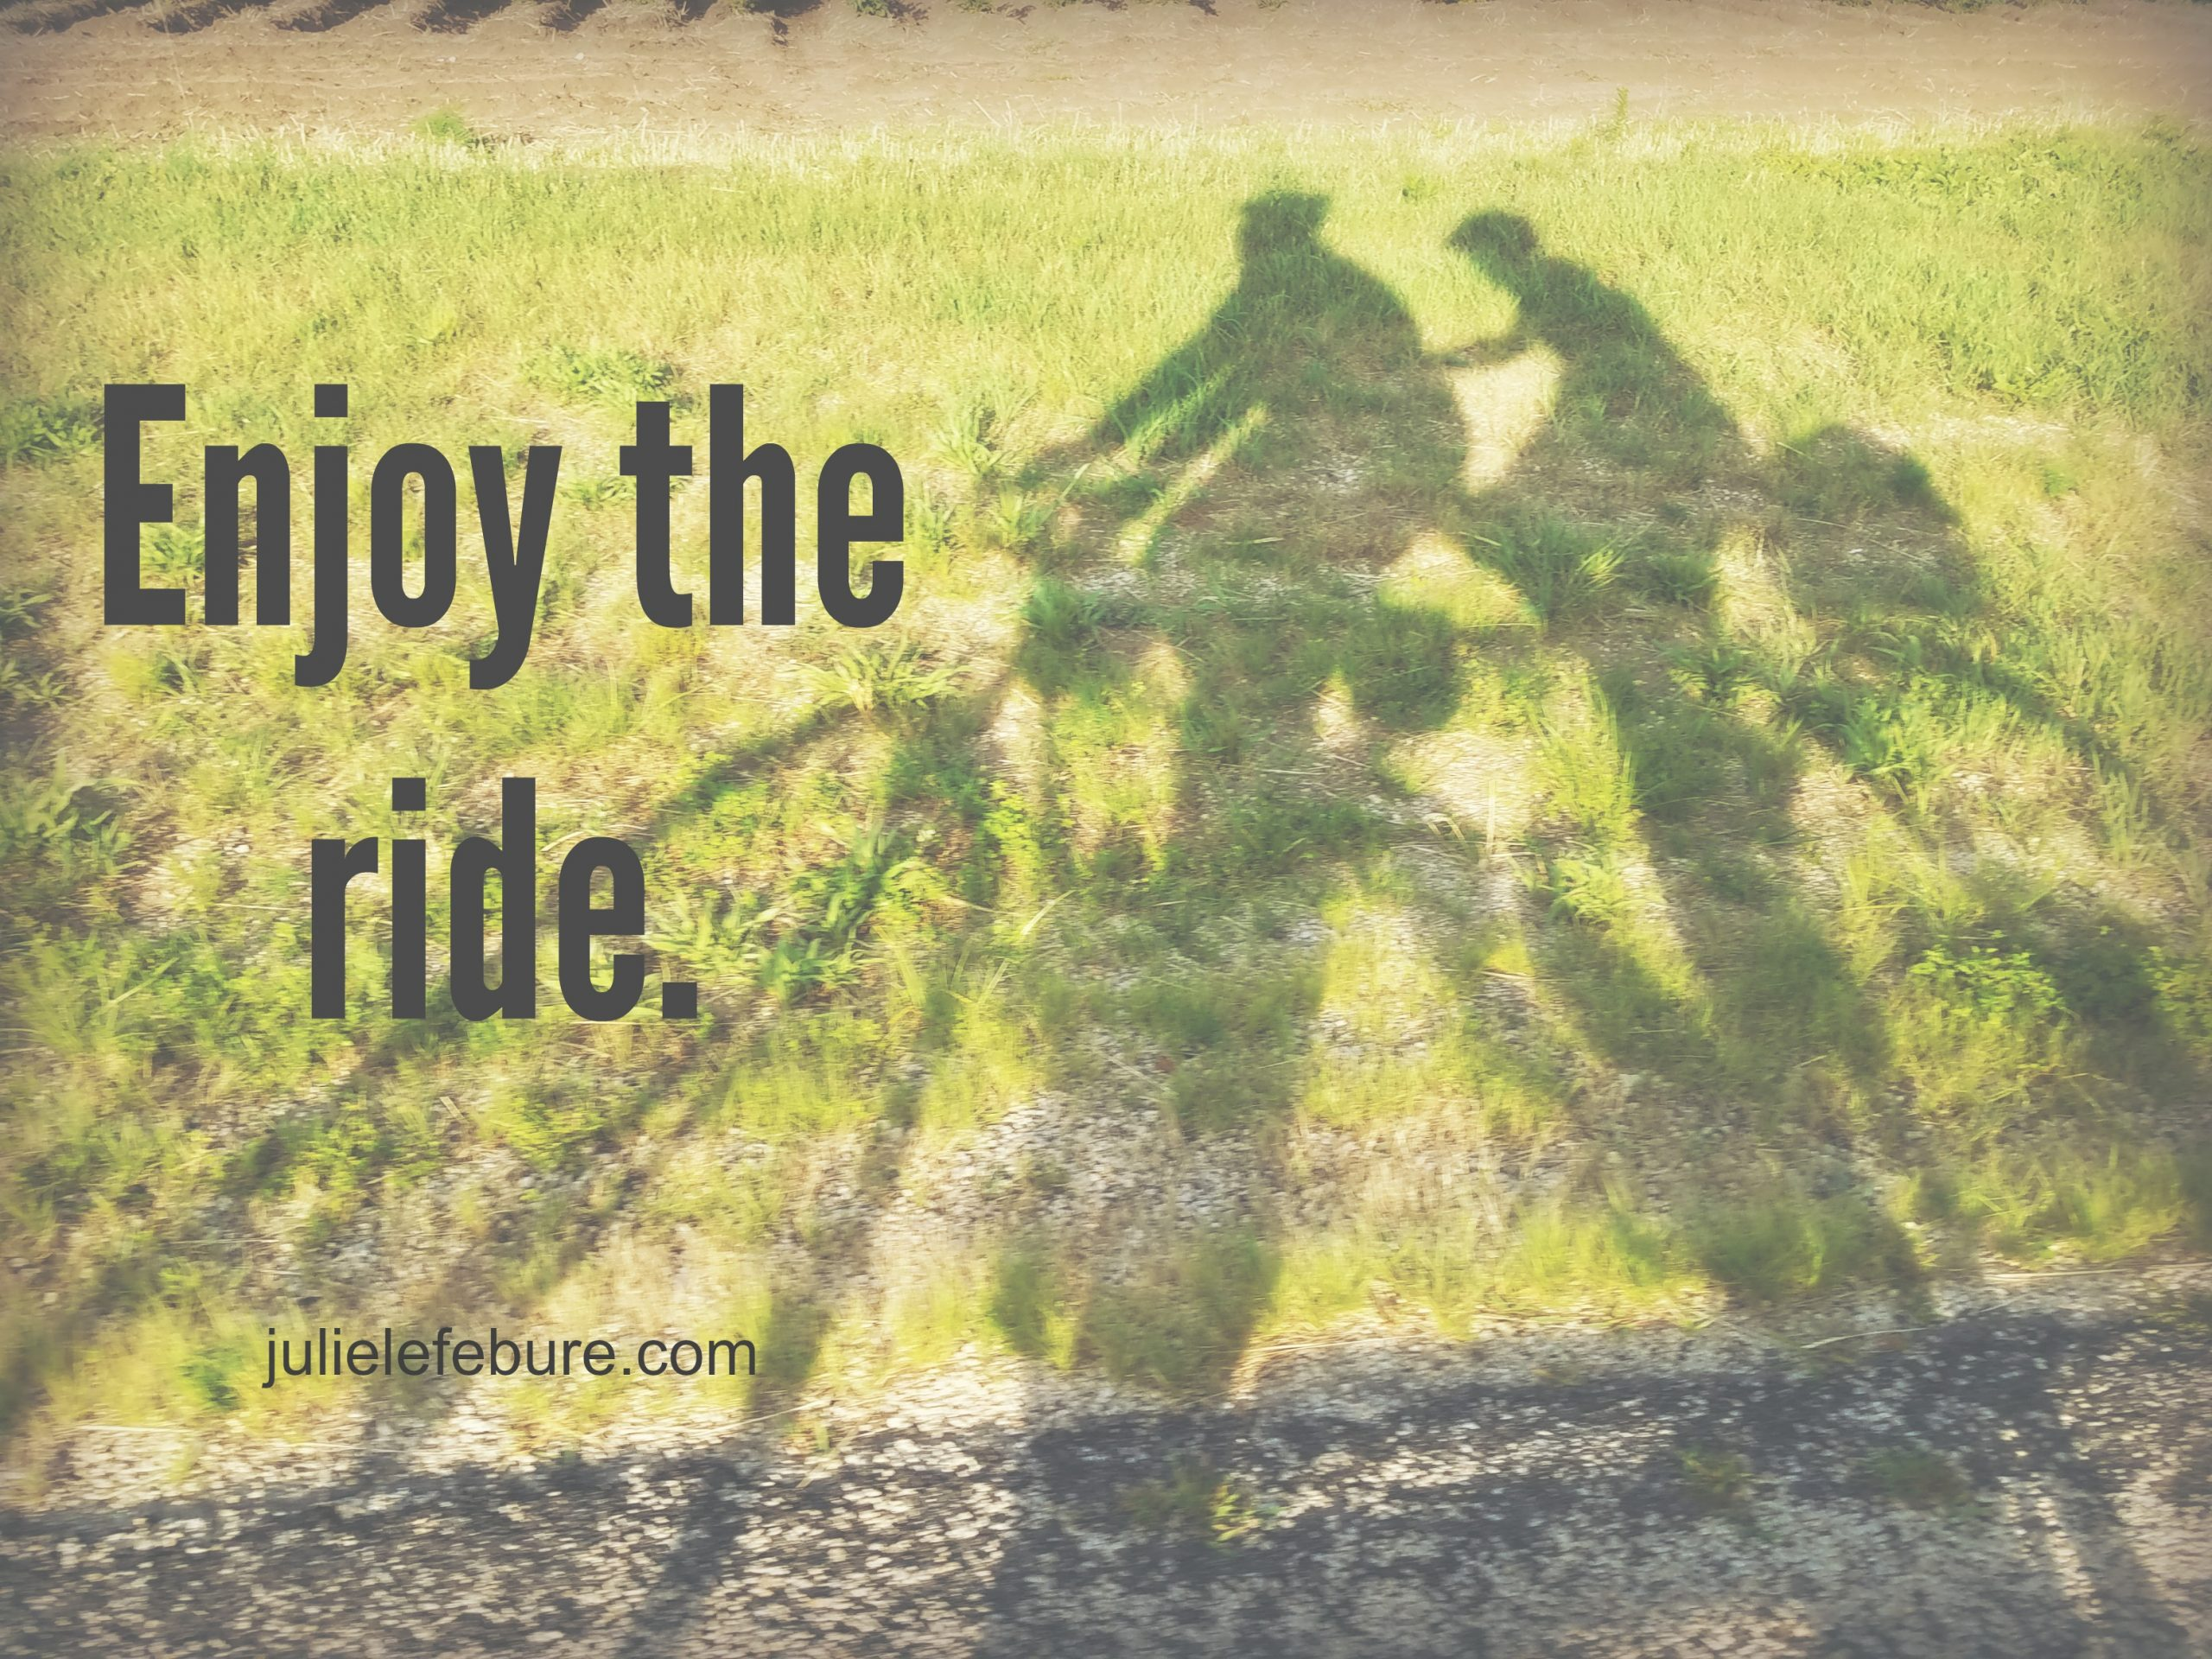 It's A Good Day To Enjoy The Ride